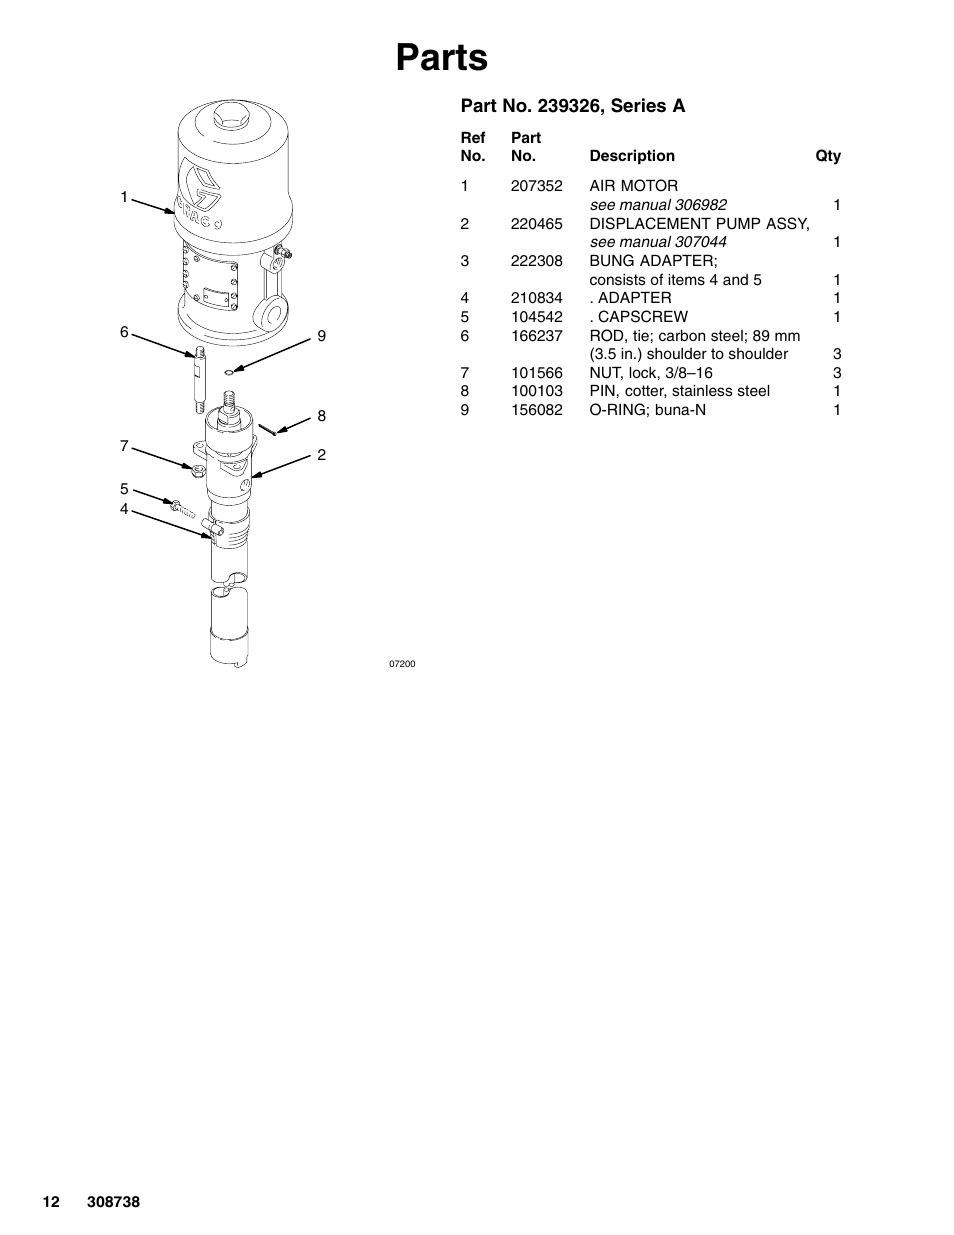 Parts | Graco Ratio President Pump 10:1 User Manual | Page 12 / 16